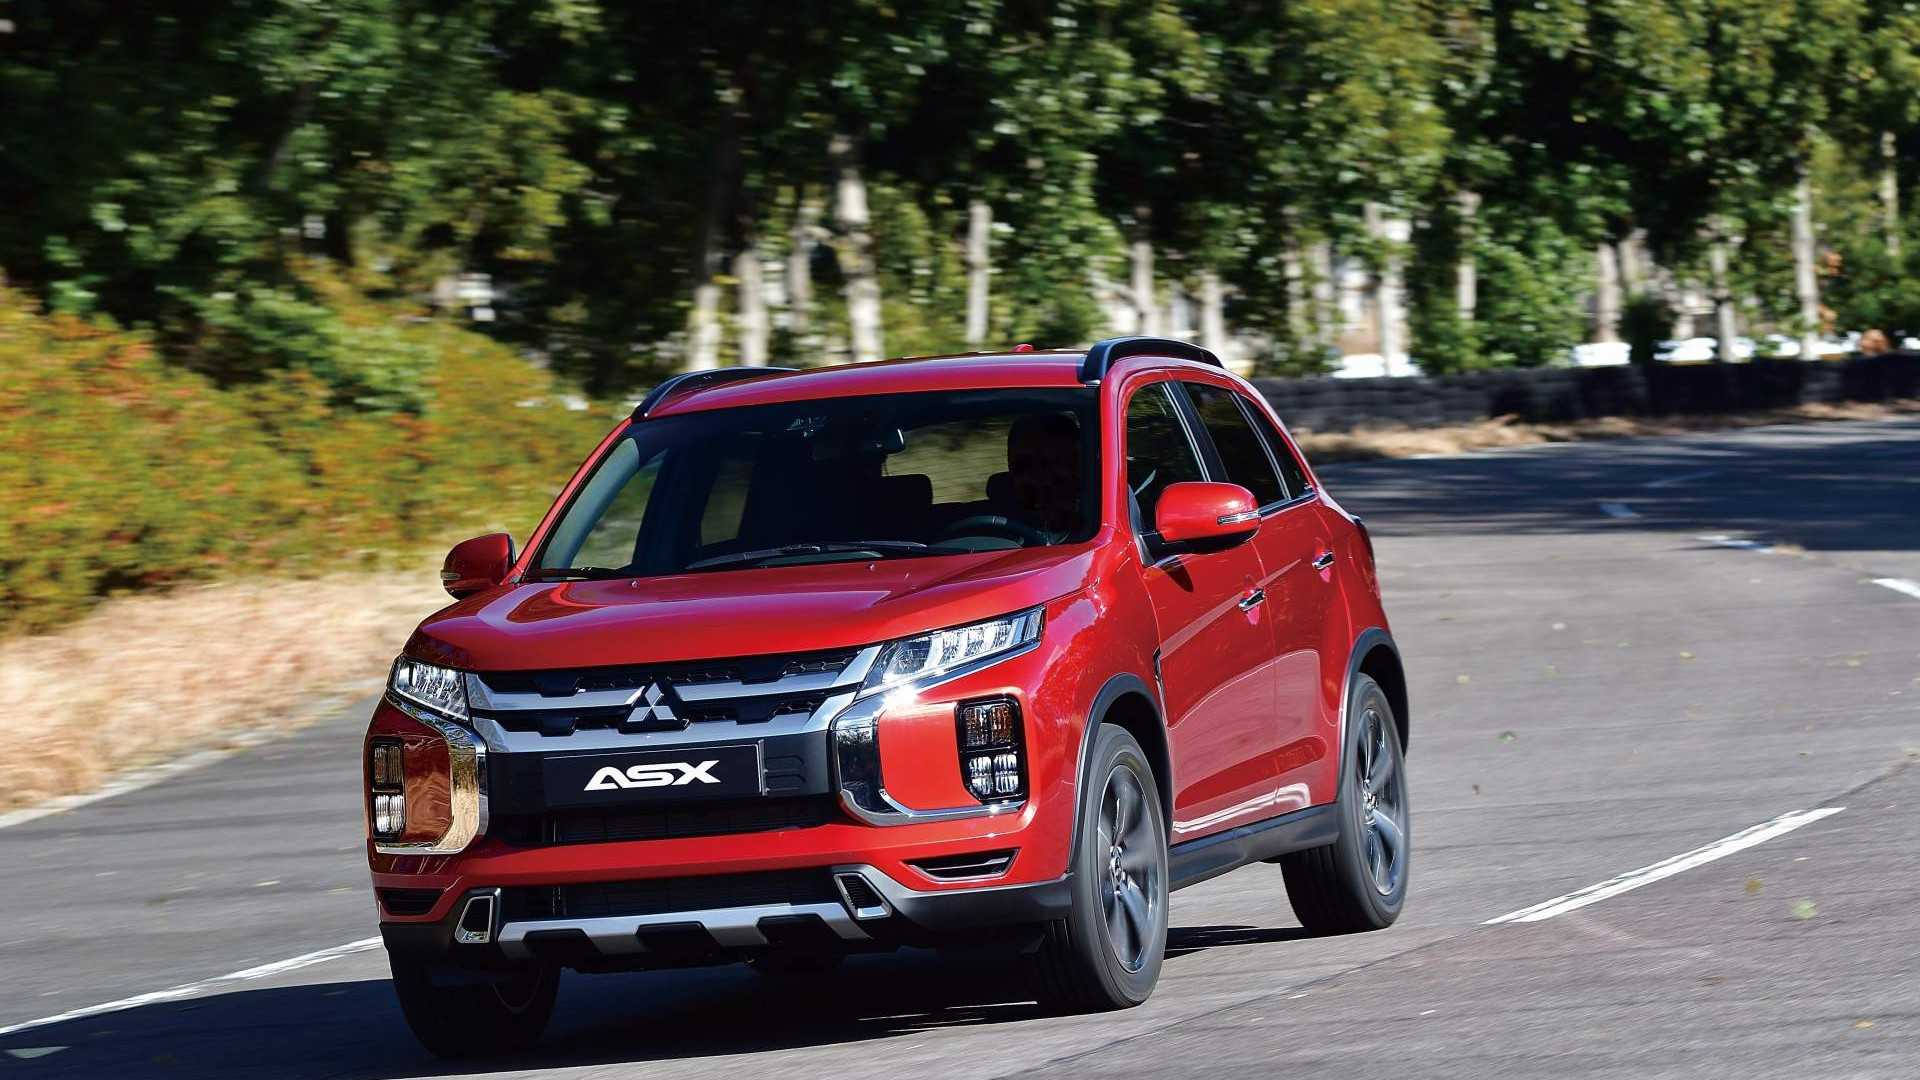 26 The Uusi Mitsubishi Asx 2020 New Model And Performance